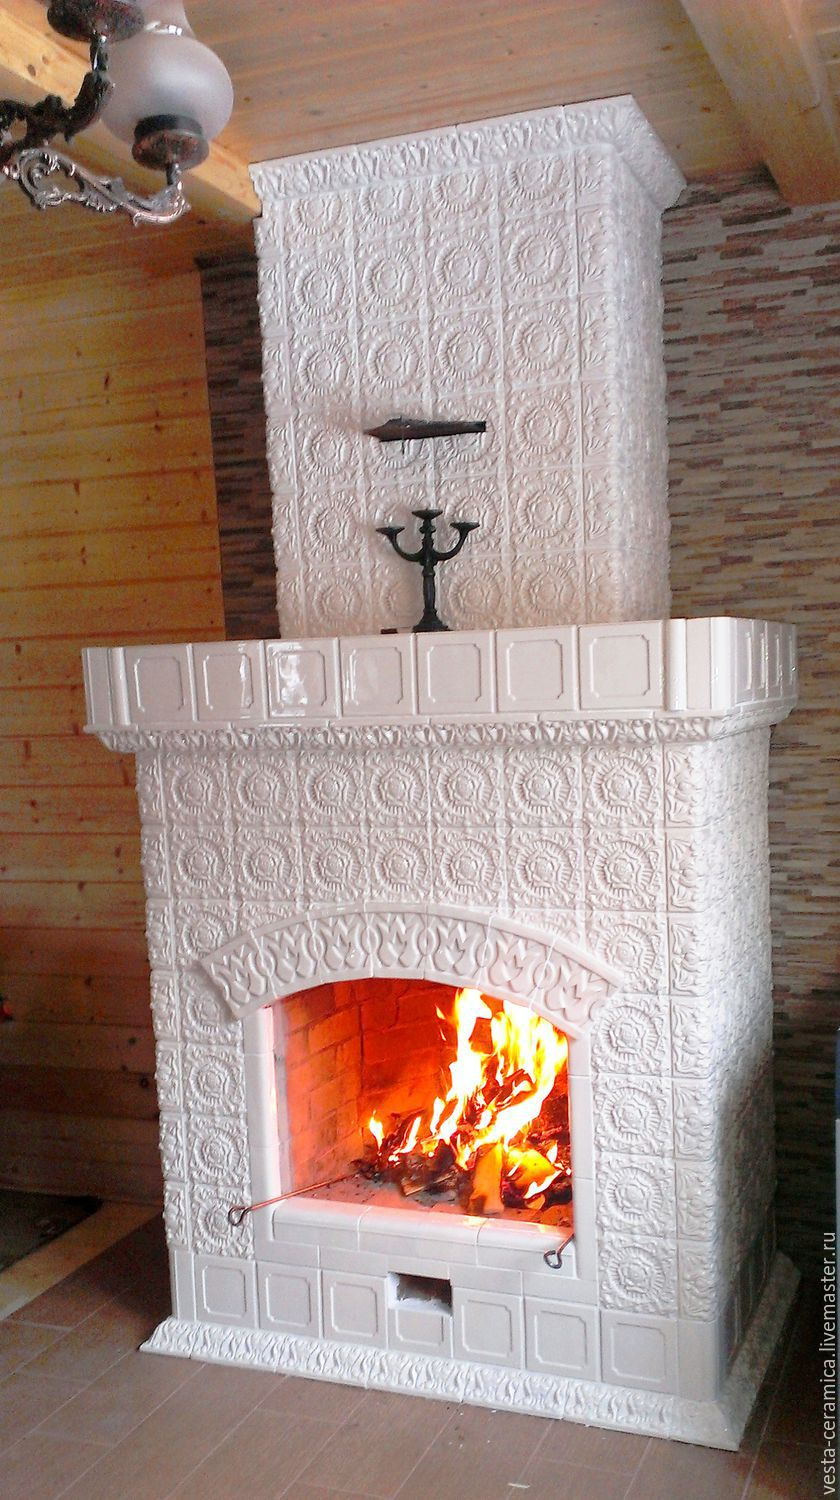 Tiled fireplace ', Rungo', Fireplaces, Moscow,  Фото №1